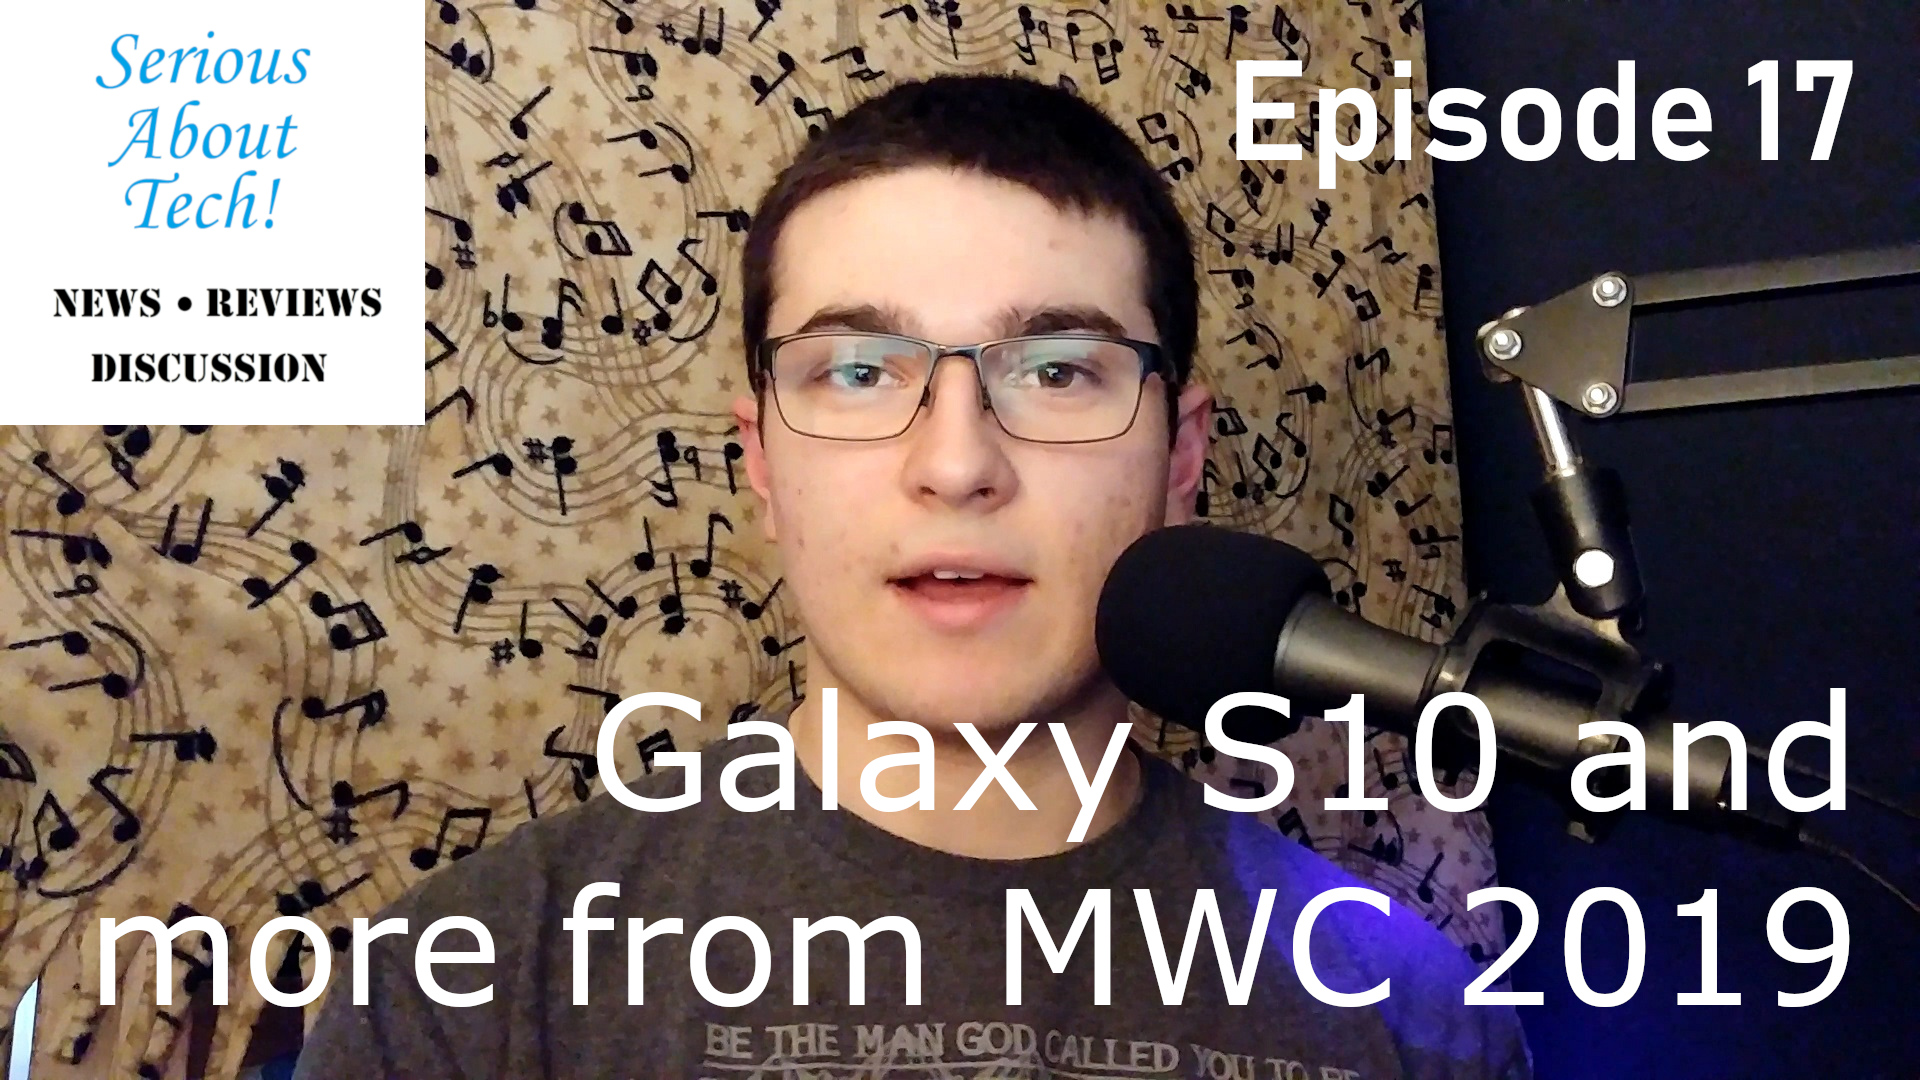 Episode 17 of the Serious About Tech podcast: Galaxy S10 and more from MWC 2019